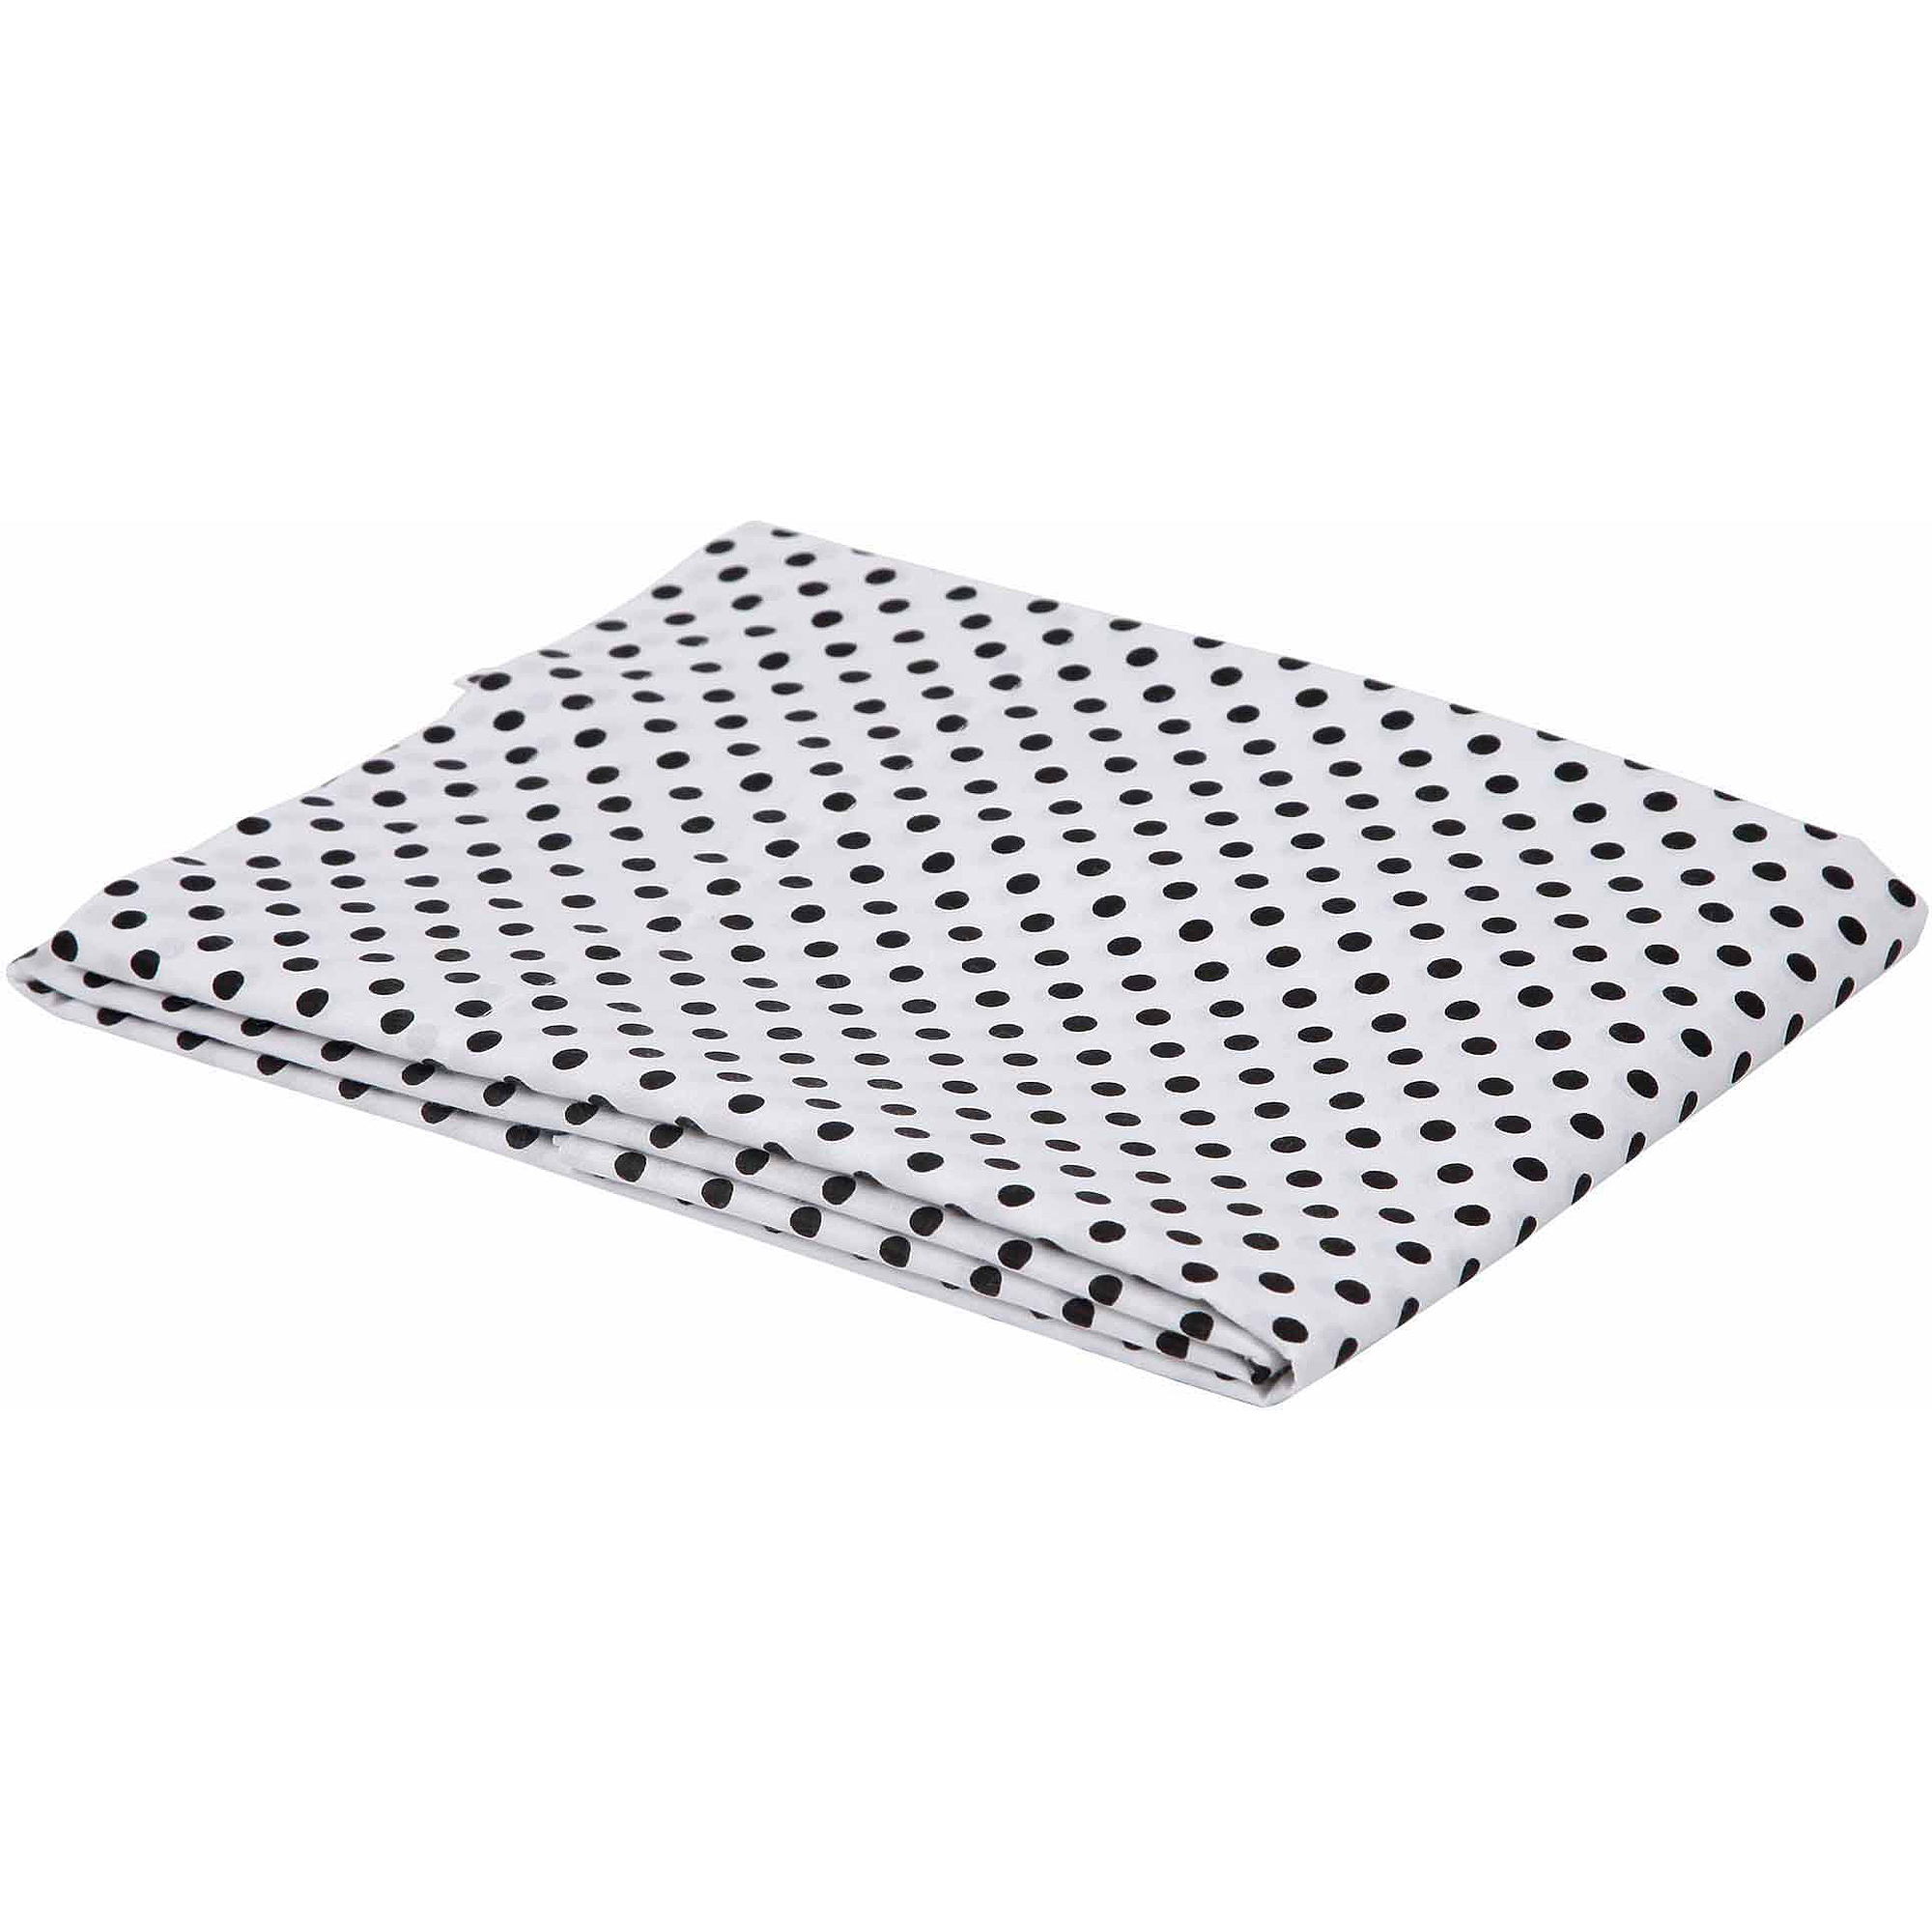 Bacati - Pin Dots Fitted Crib Sheet 100% Cotton Percale,  Available in Multiple Colors